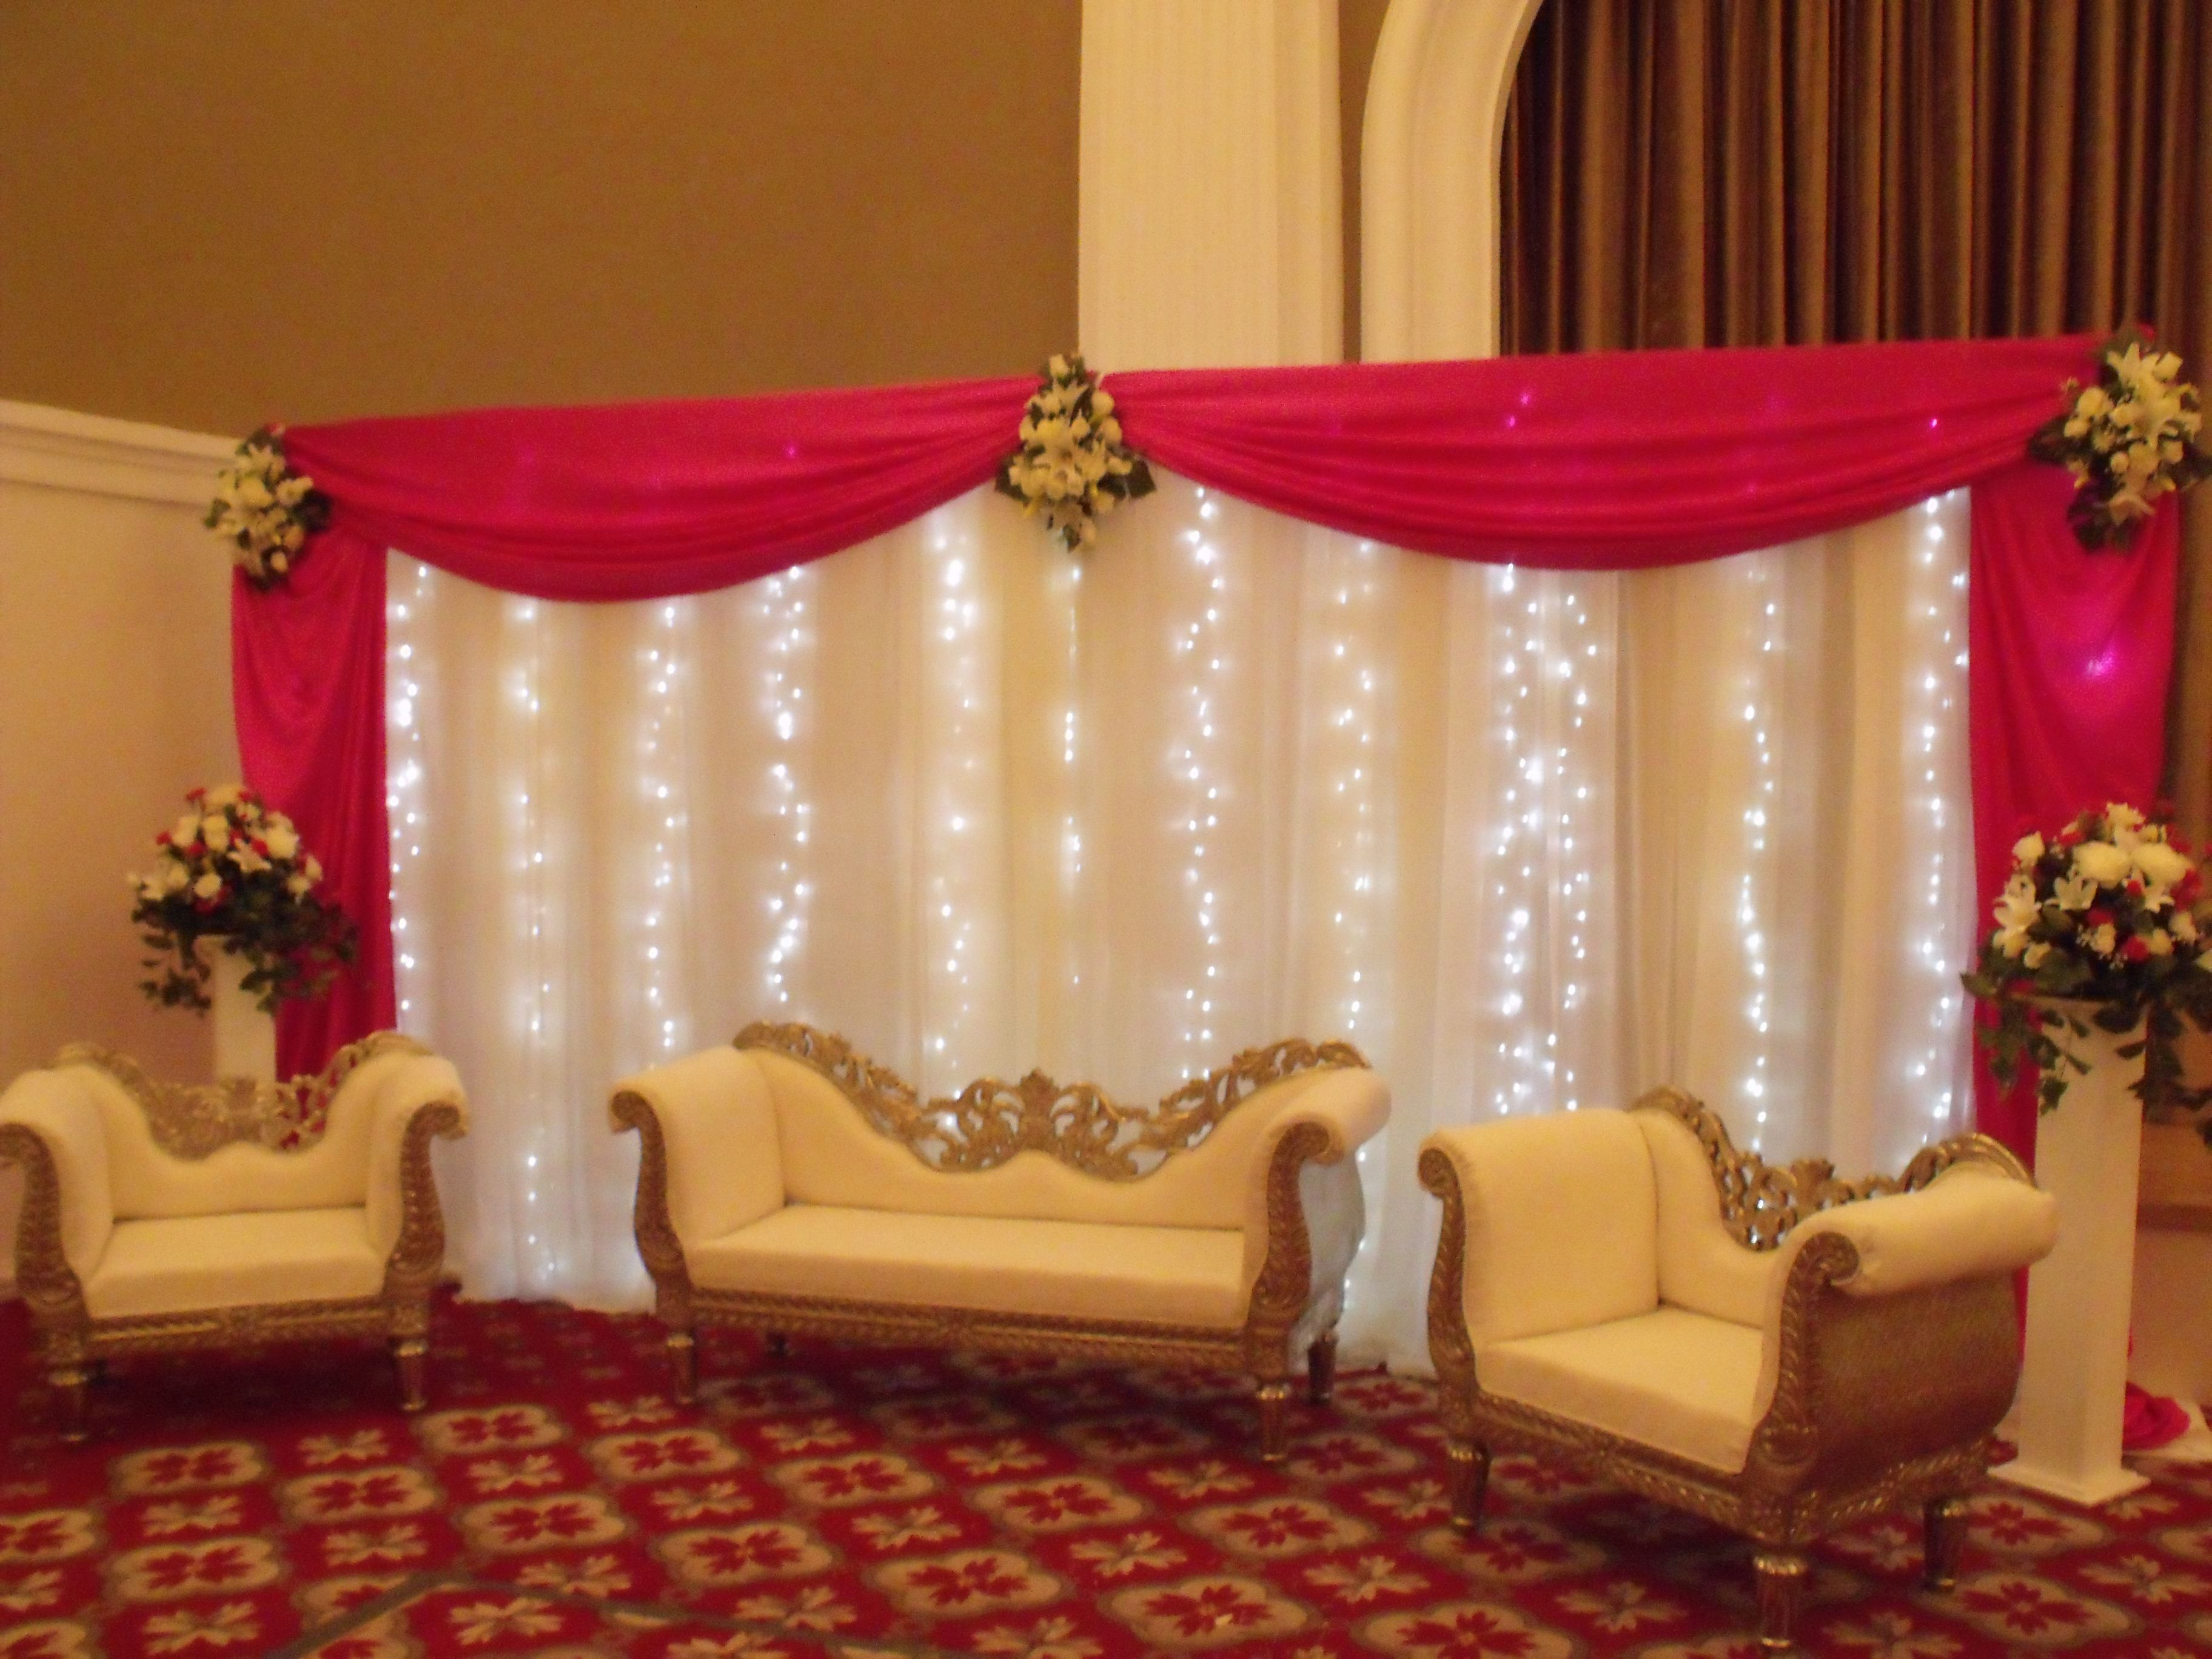 Wedding decorations wedding stage backdrops decoration for Home decorations for wedding